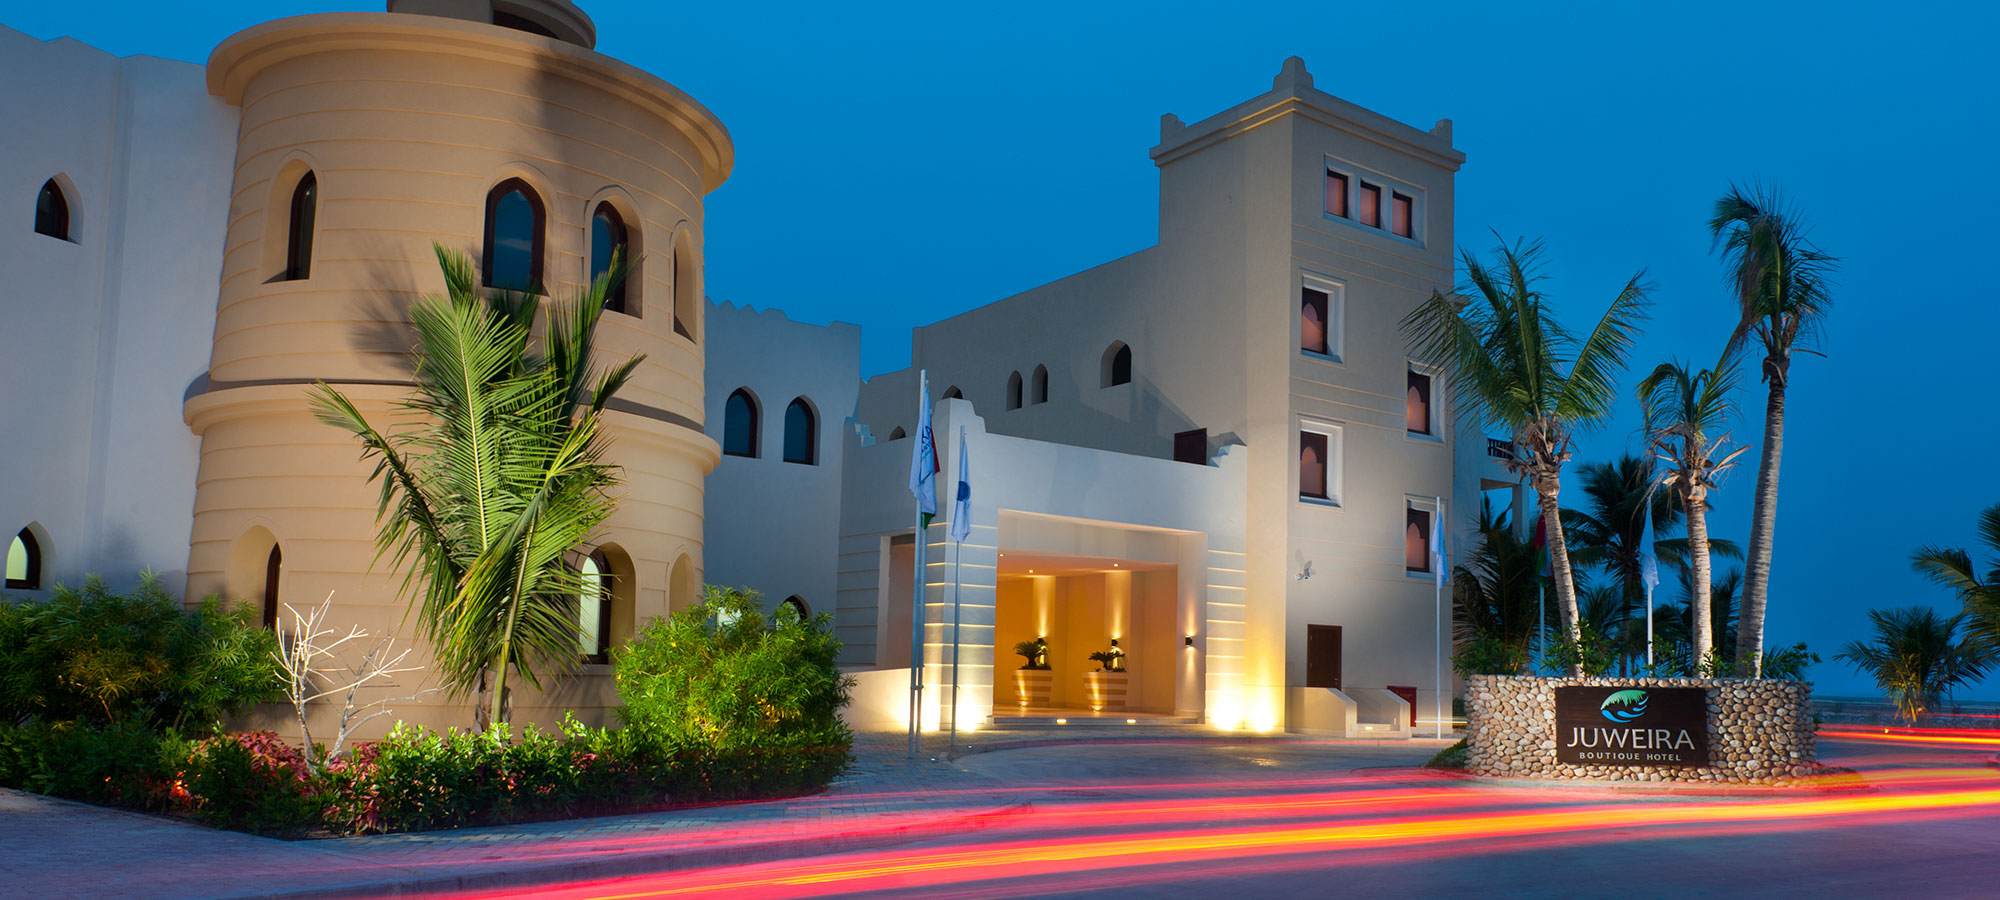 juweira boutique hotel entrance Salalah Oman